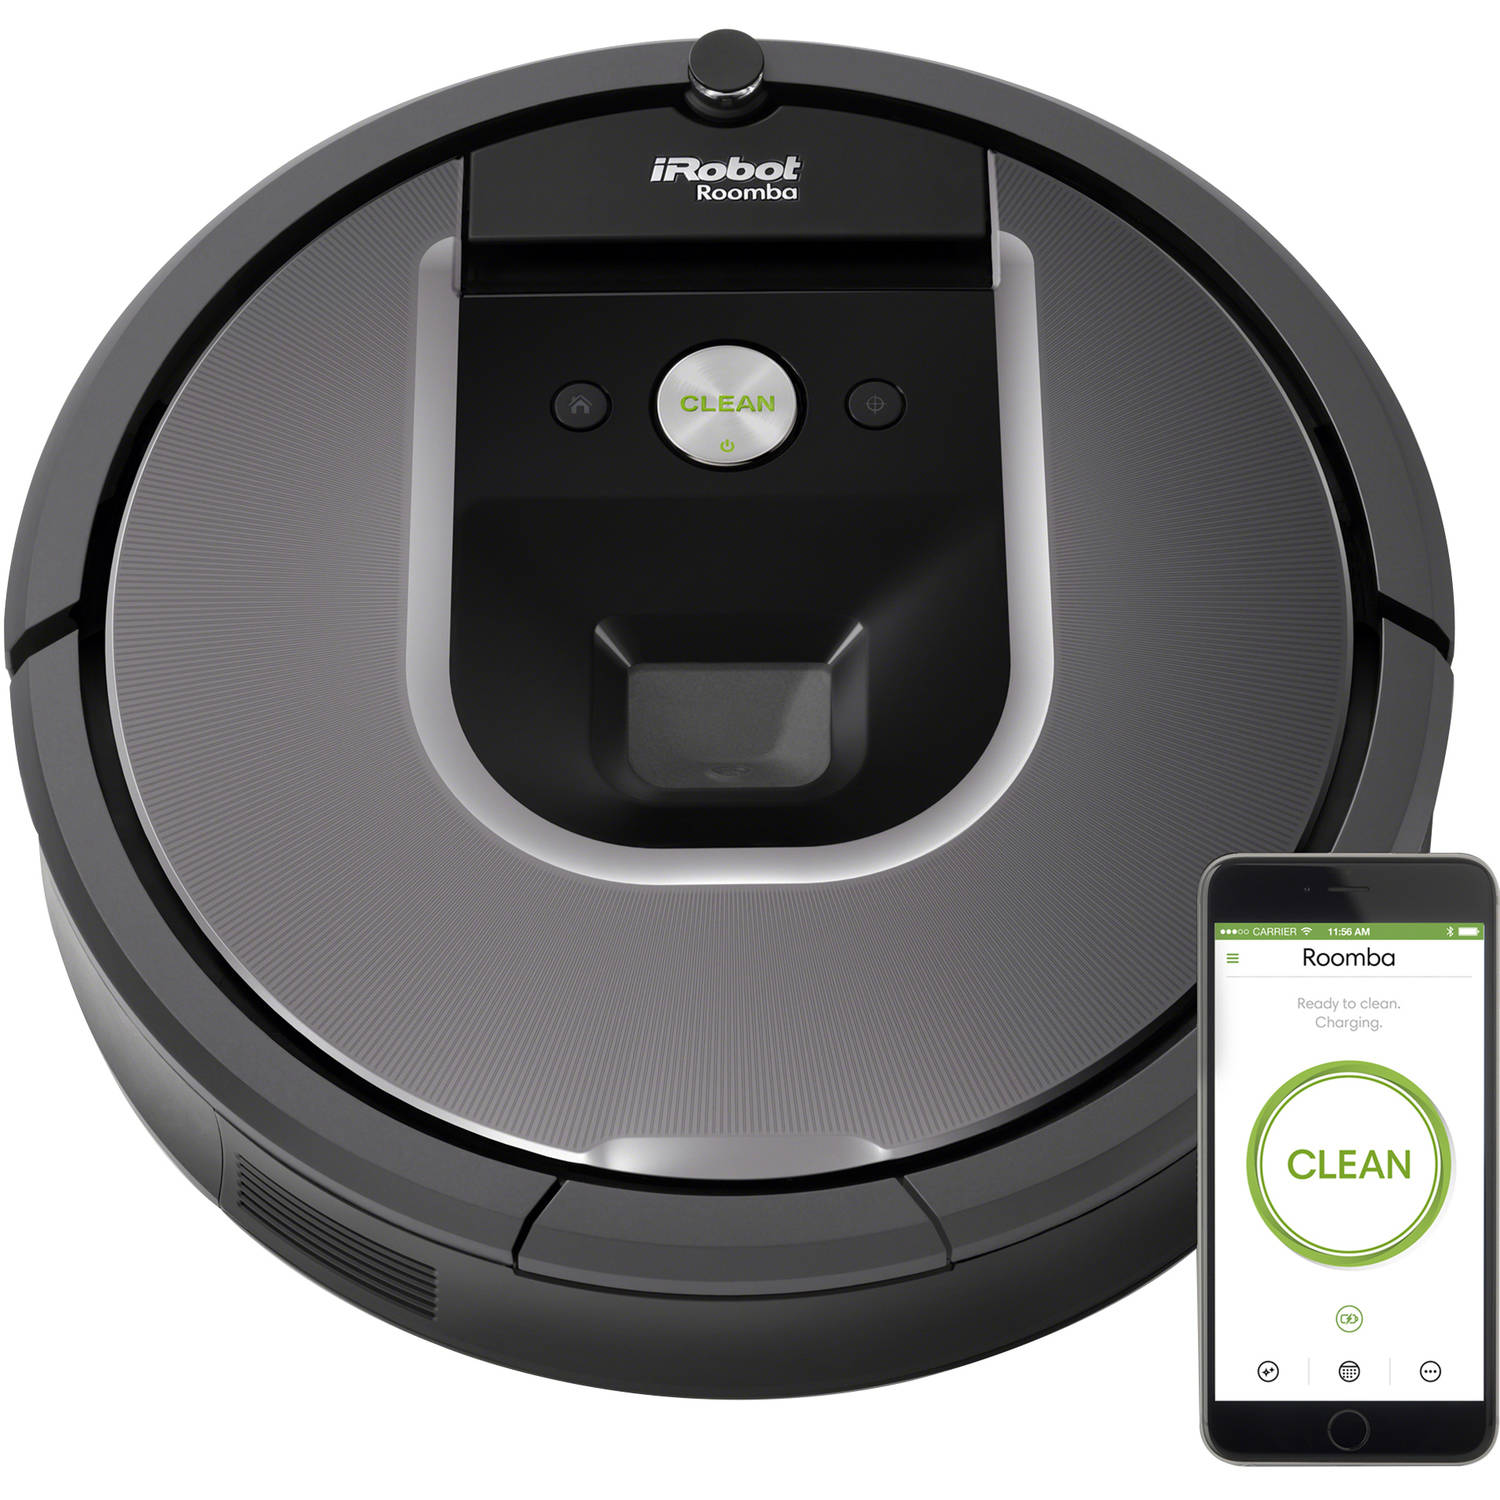 iRobot Roomba 960 Wi-Fi Connected Robot Vacuum w/Manufacturer's Warranty